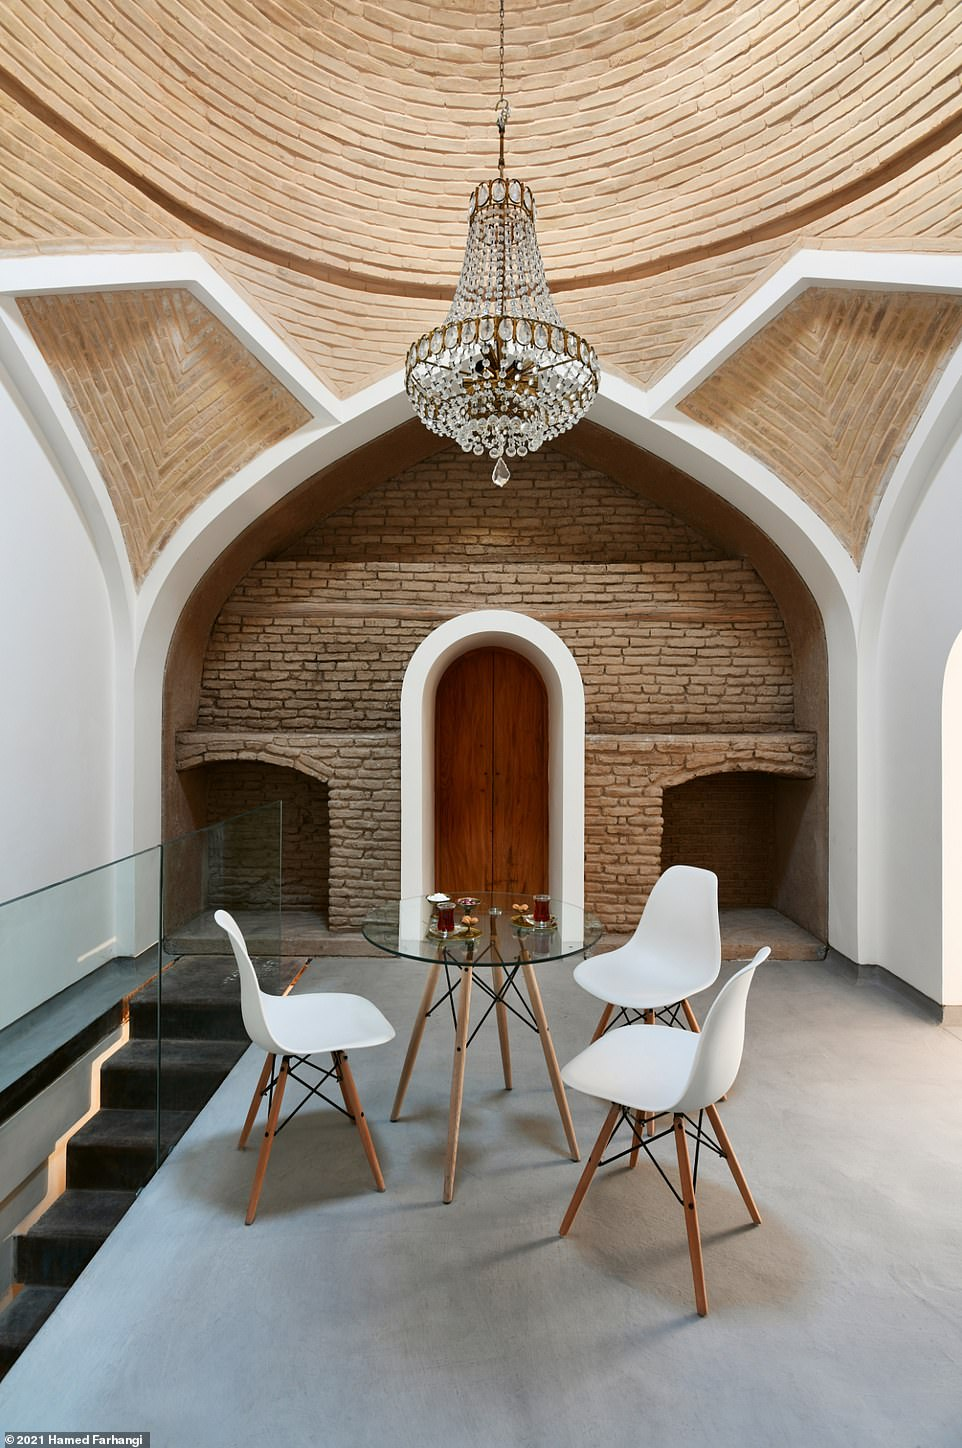 In Persian Nights Wegmann explains how the Joybar boutique hotel (pictured) in the city of Esfahan in central Iran 'rose from the run-down remnants of a residence from the late Qajar Dynasty'. He goes on to say: 'Joybar Boutique Hotel was a passion project of the young architect Tahereh Mokhtarpour and her partner, Manouchehr Peyvand Heydari, both of whom moved to Esfahan to realise the renovation and consequent boutique hotel project'